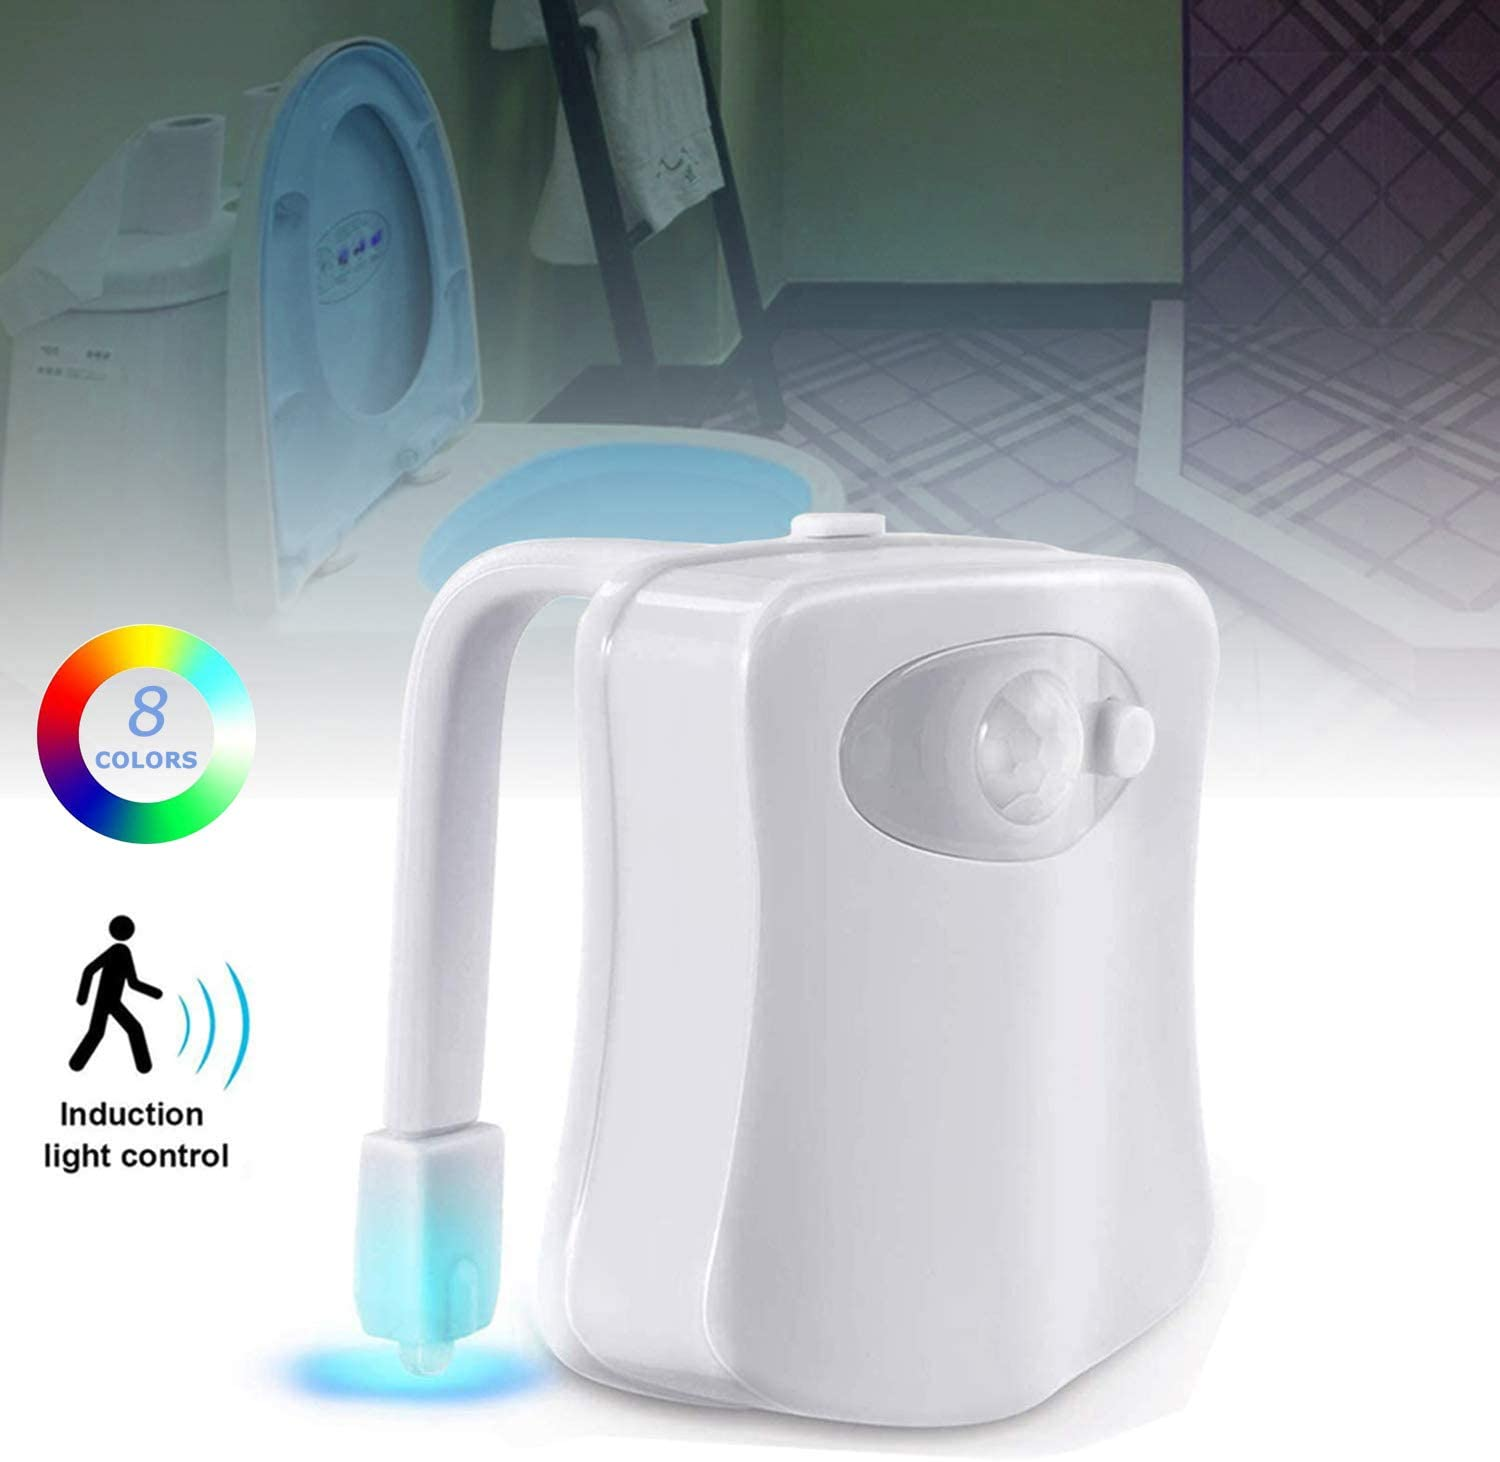 The Original LED Toilet Lights Motion Detection, Motion Sensor Activated 8 Color Changing Inside Toilet Bowl Night Light for Bathroom, Perfect Decorating Gift for Men Dad Kids, Toddlers Potty Training